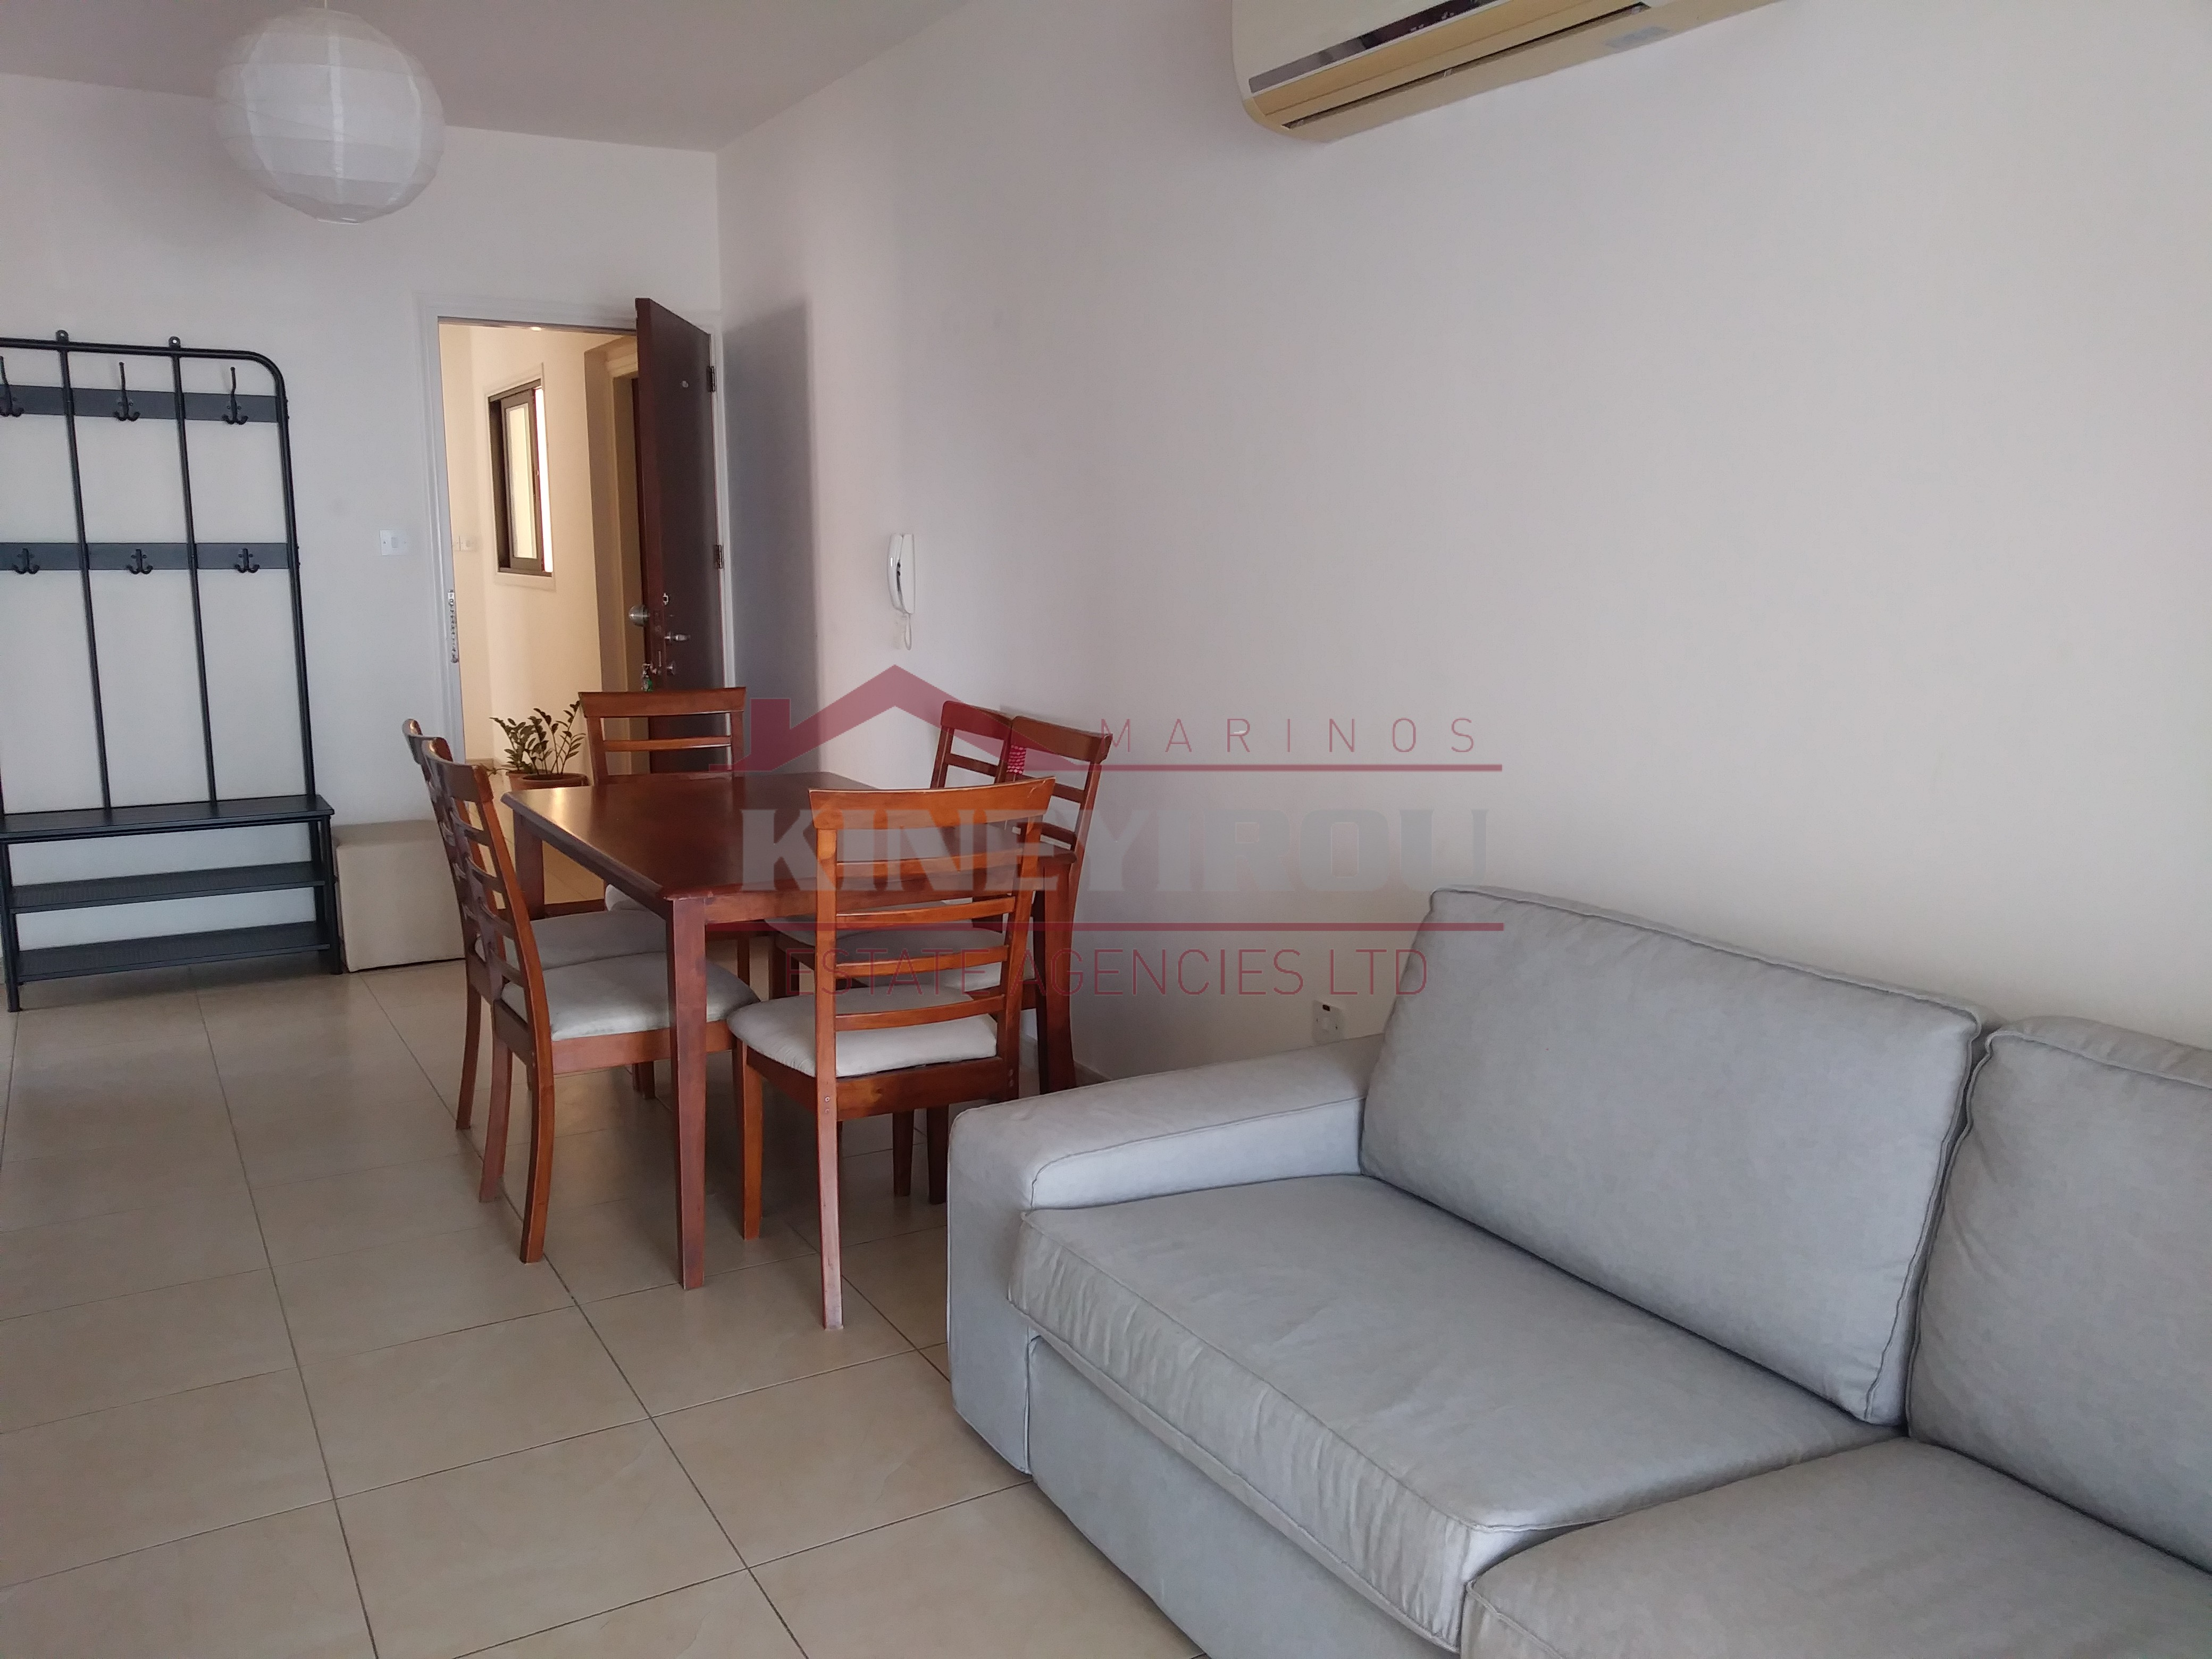 Property in Larnaca – Apartment in center For sale